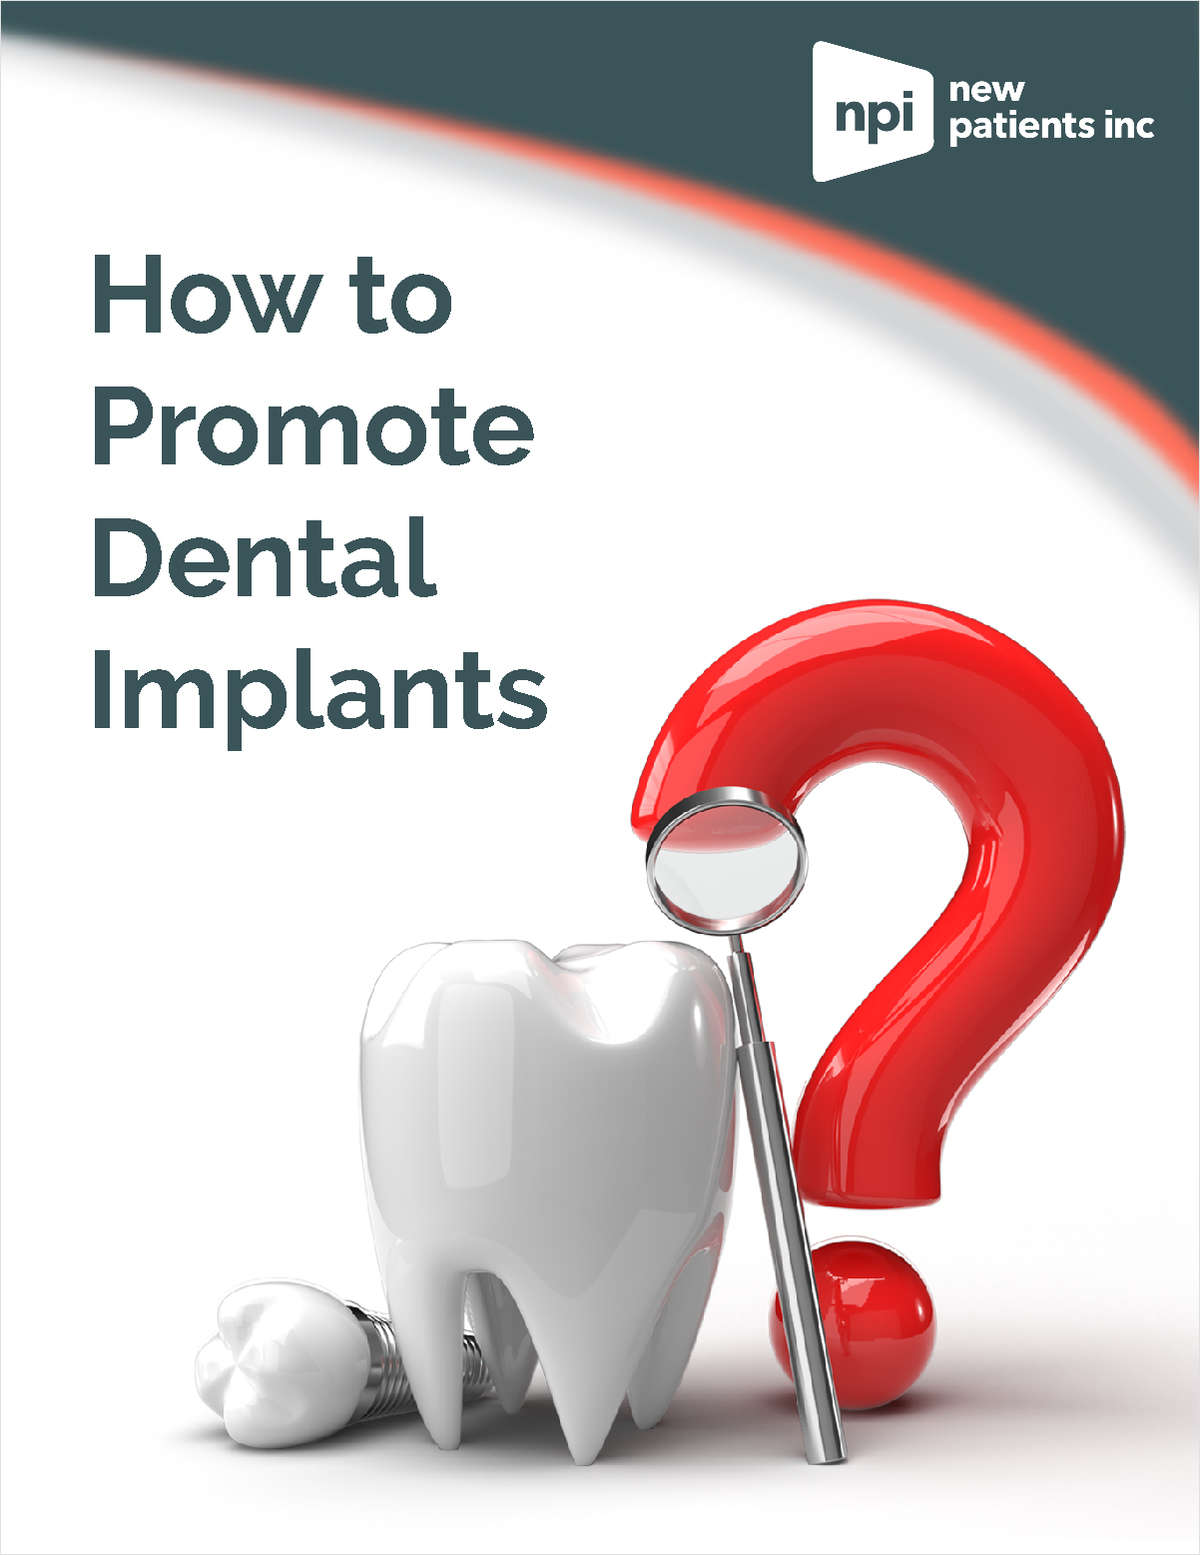 How to Promote Dental Implants